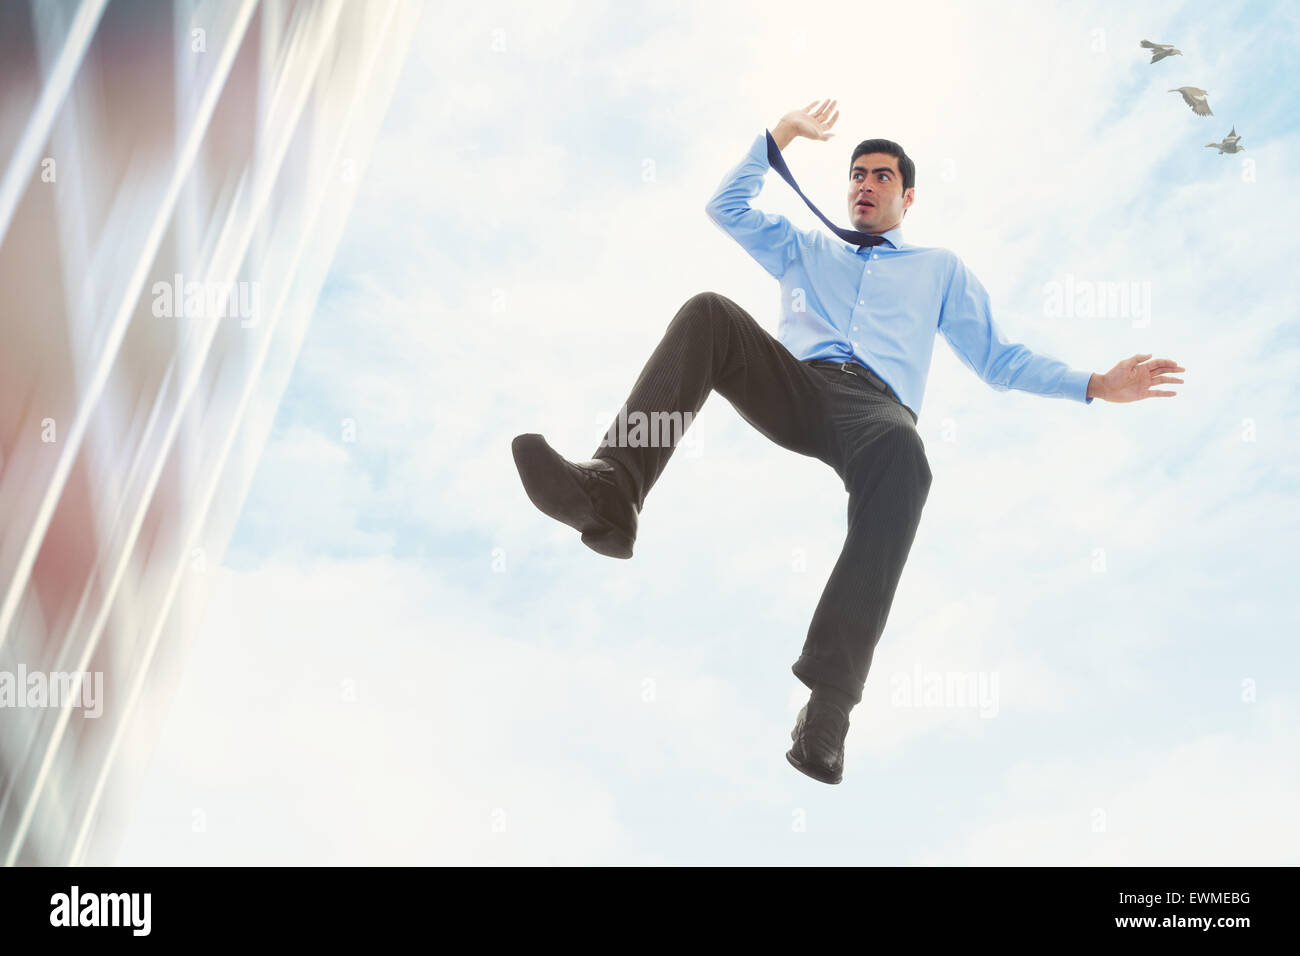 Stock Image Of Businessman Falling Off A Building